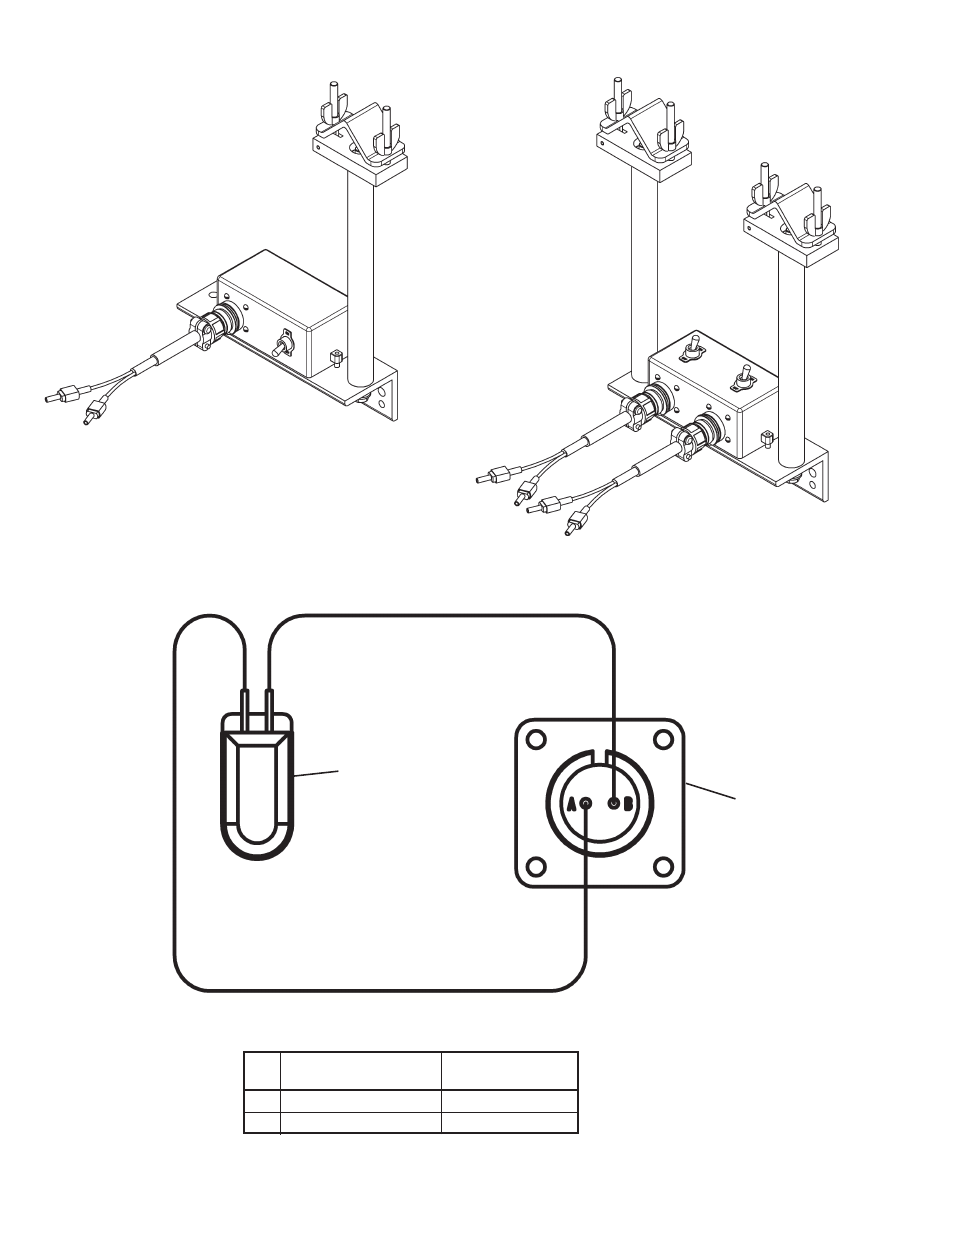 Wire Diagram On Ox Wiring Tjm Winch Accessories Contd Bug 5485 Contactor O Omnicell